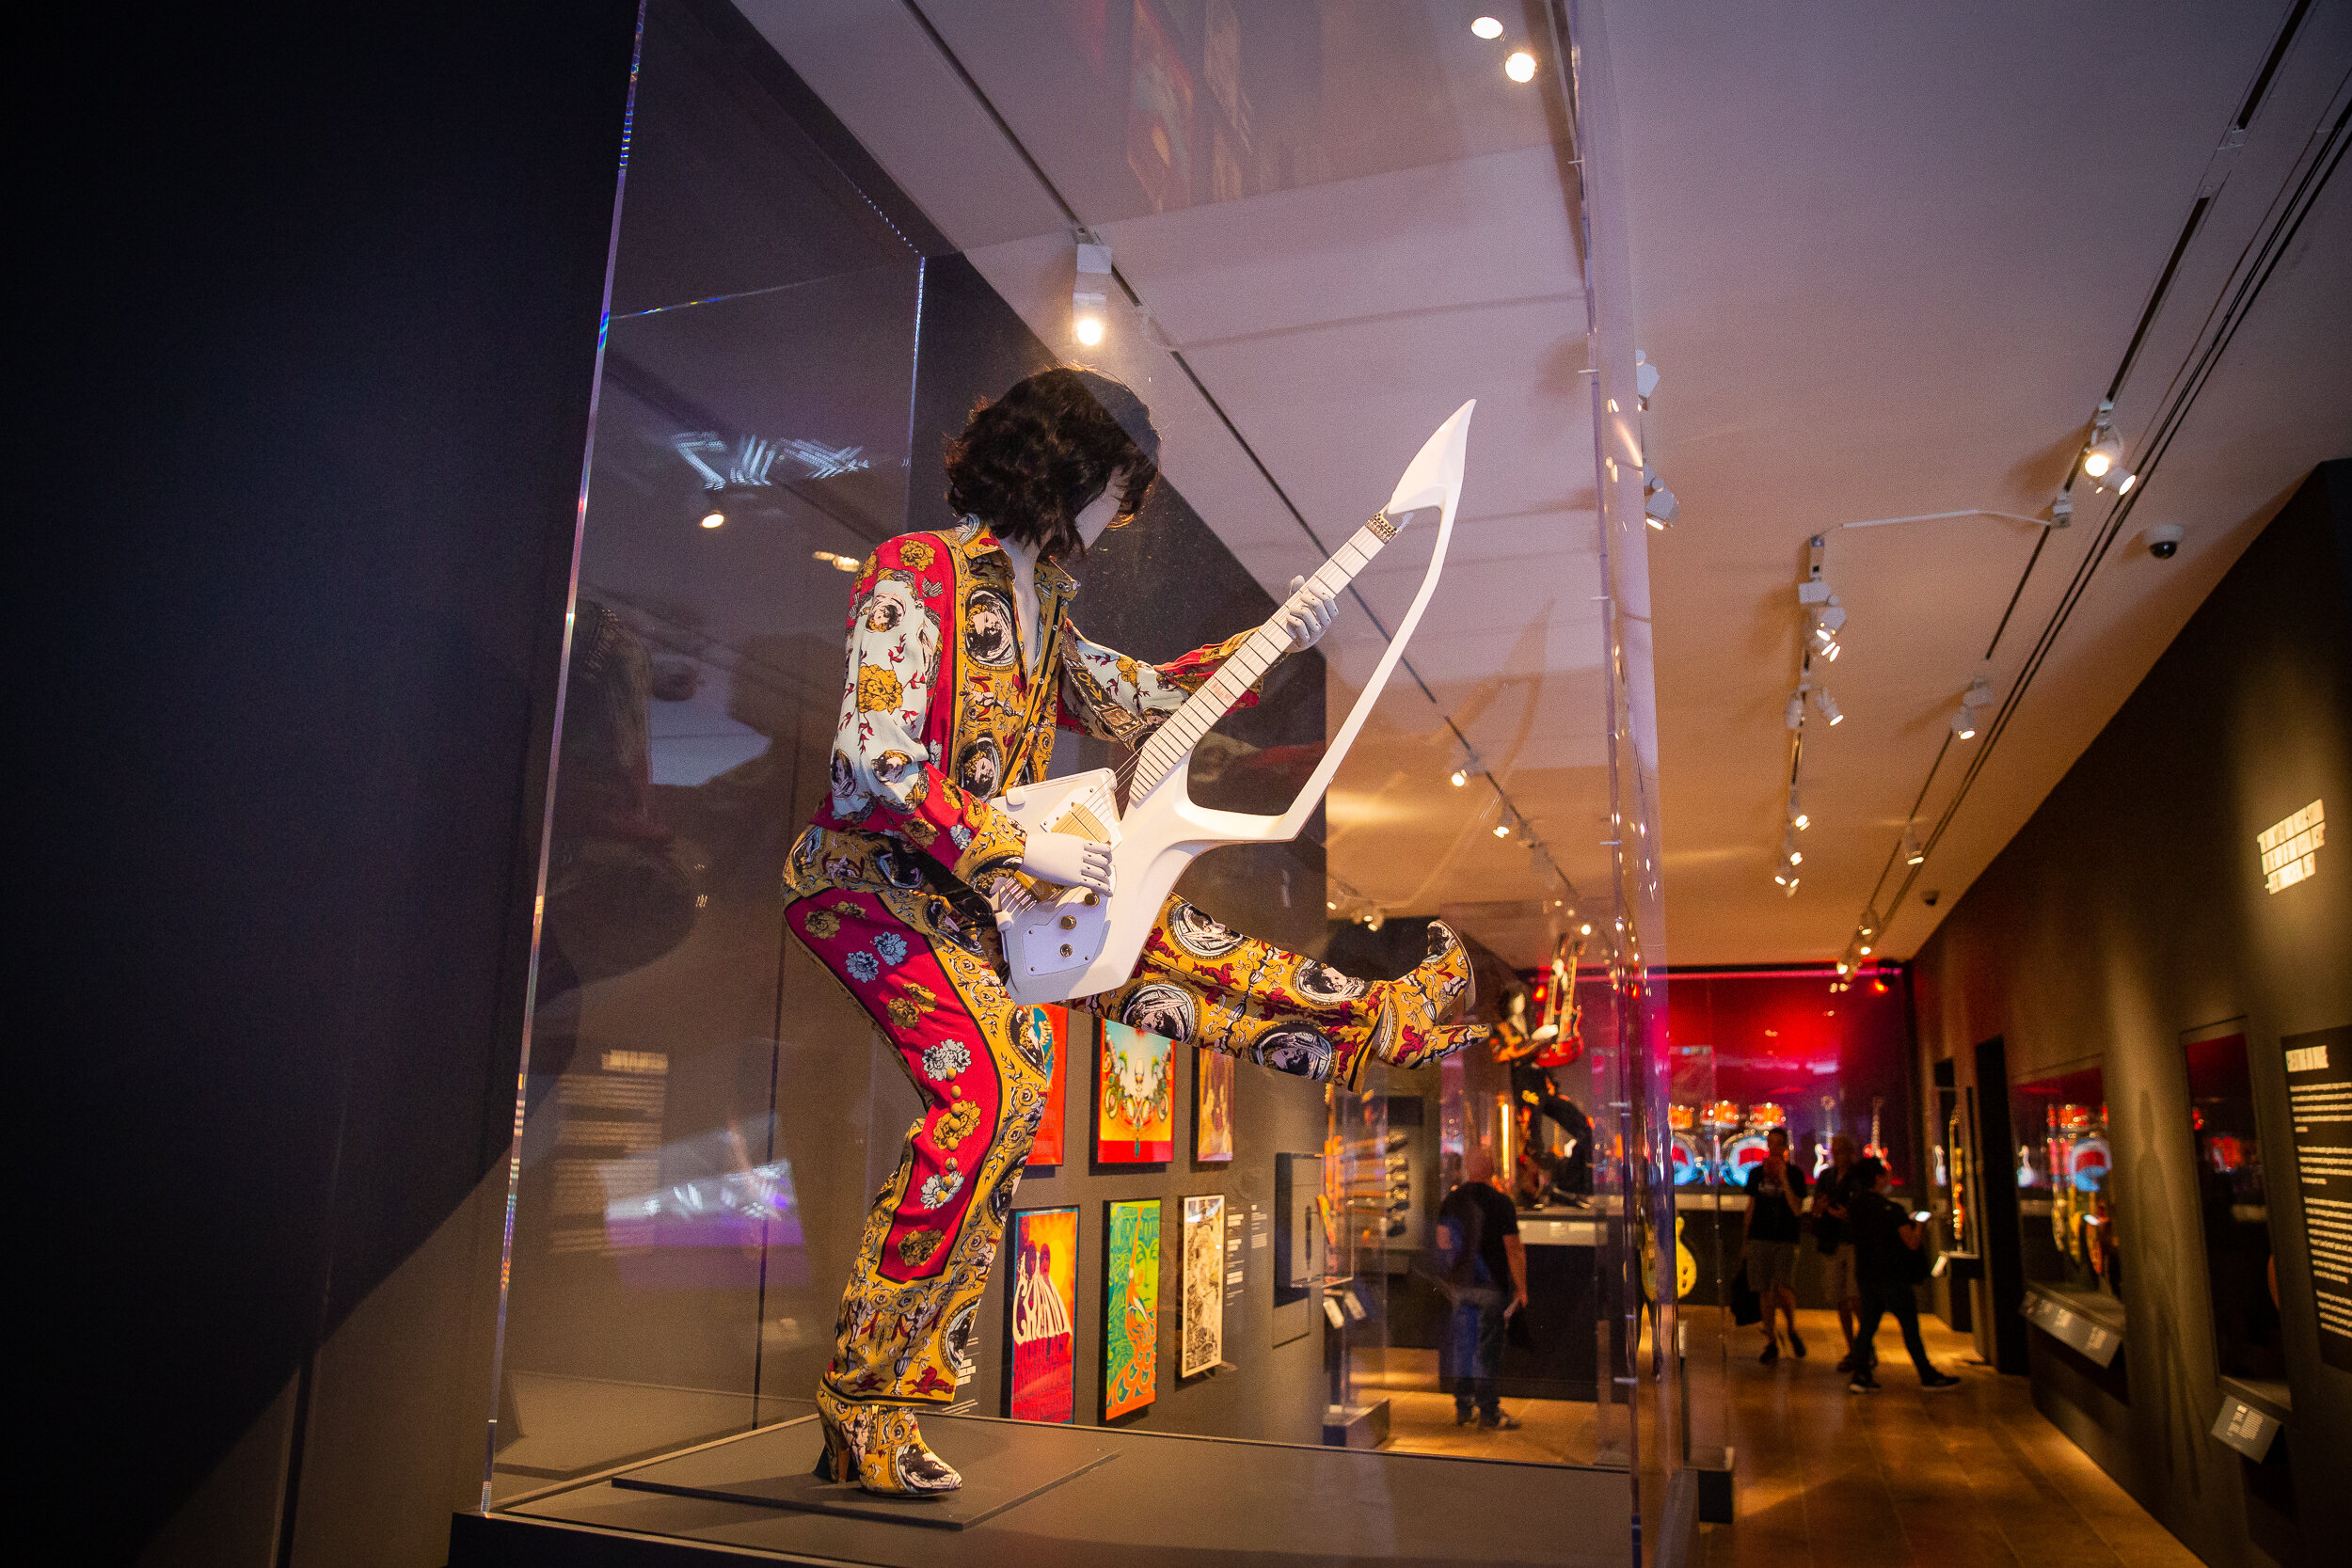 Prince's stage outfit and guitar at The Metropolitan Museum of Art